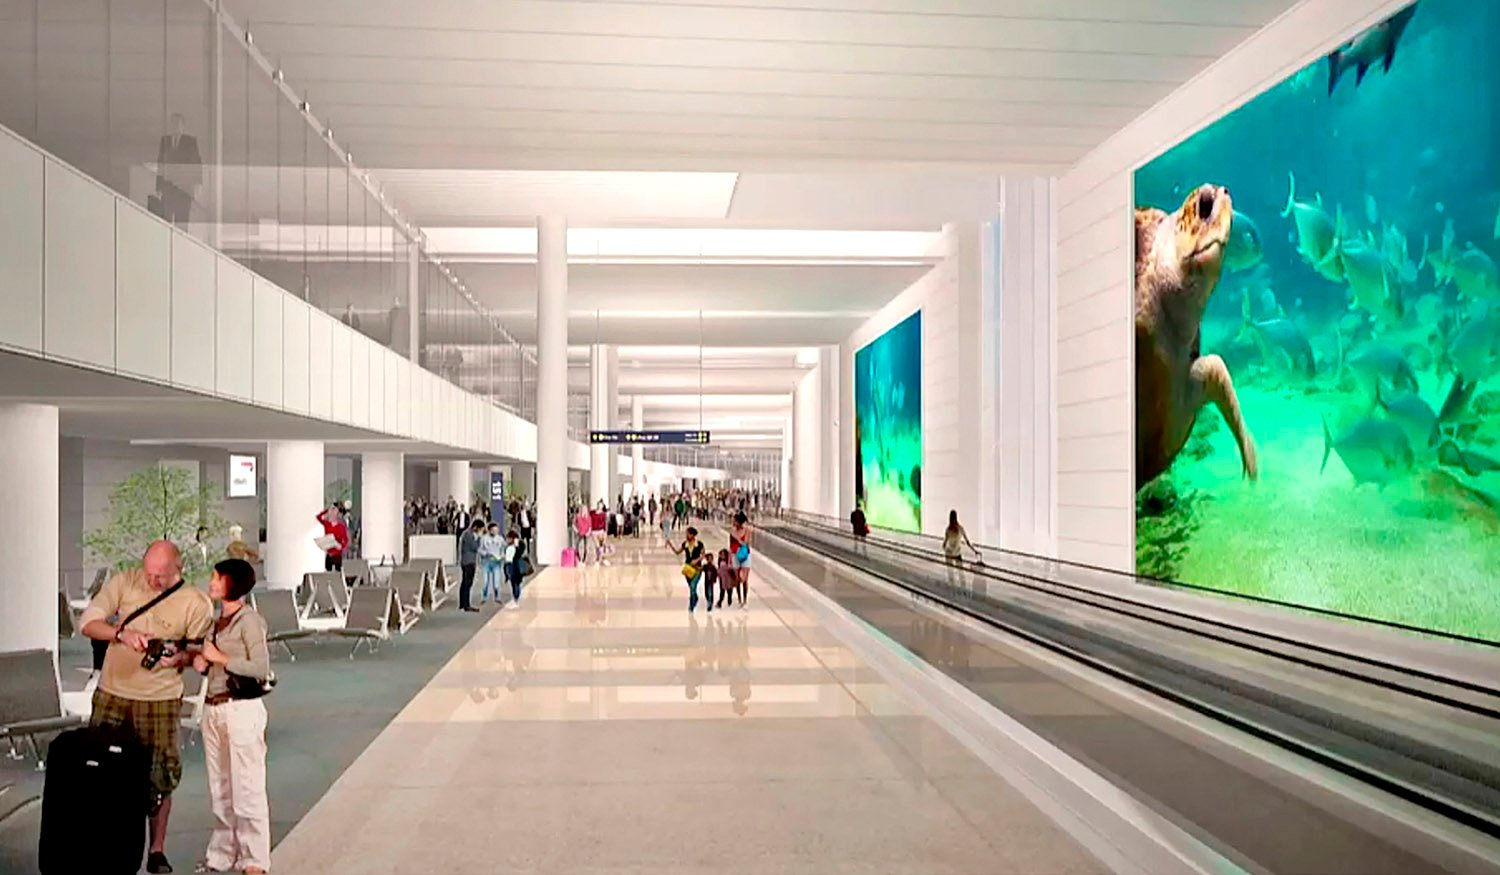 An elevated International Arrivals Corridor provides a welcoming first impression to international passengers. Fentress Architects}